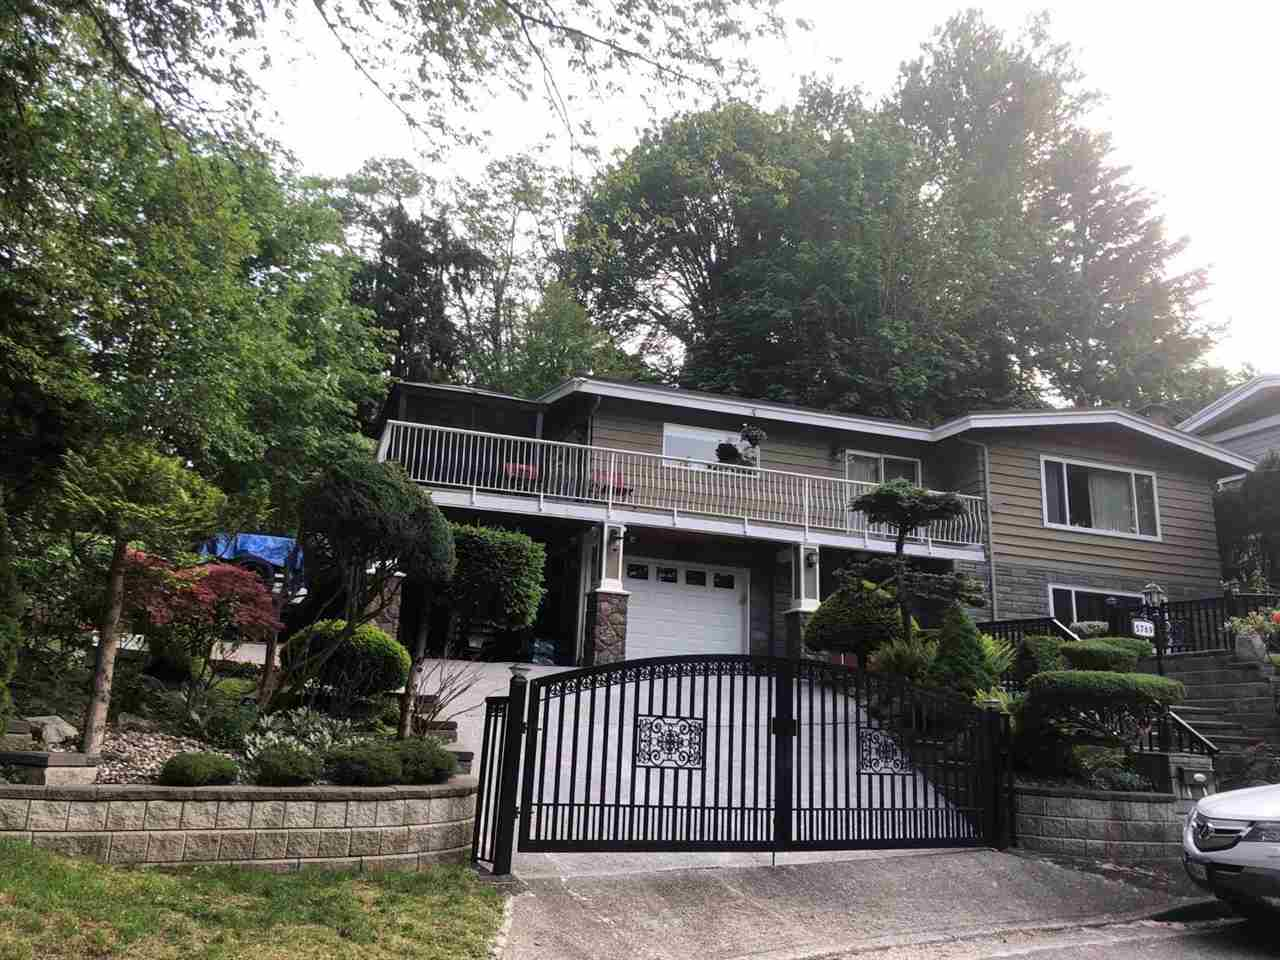 5769 KEITH STREET - South Slope House/Single Family for sale, 4 Bedrooms (R2529245) - #1